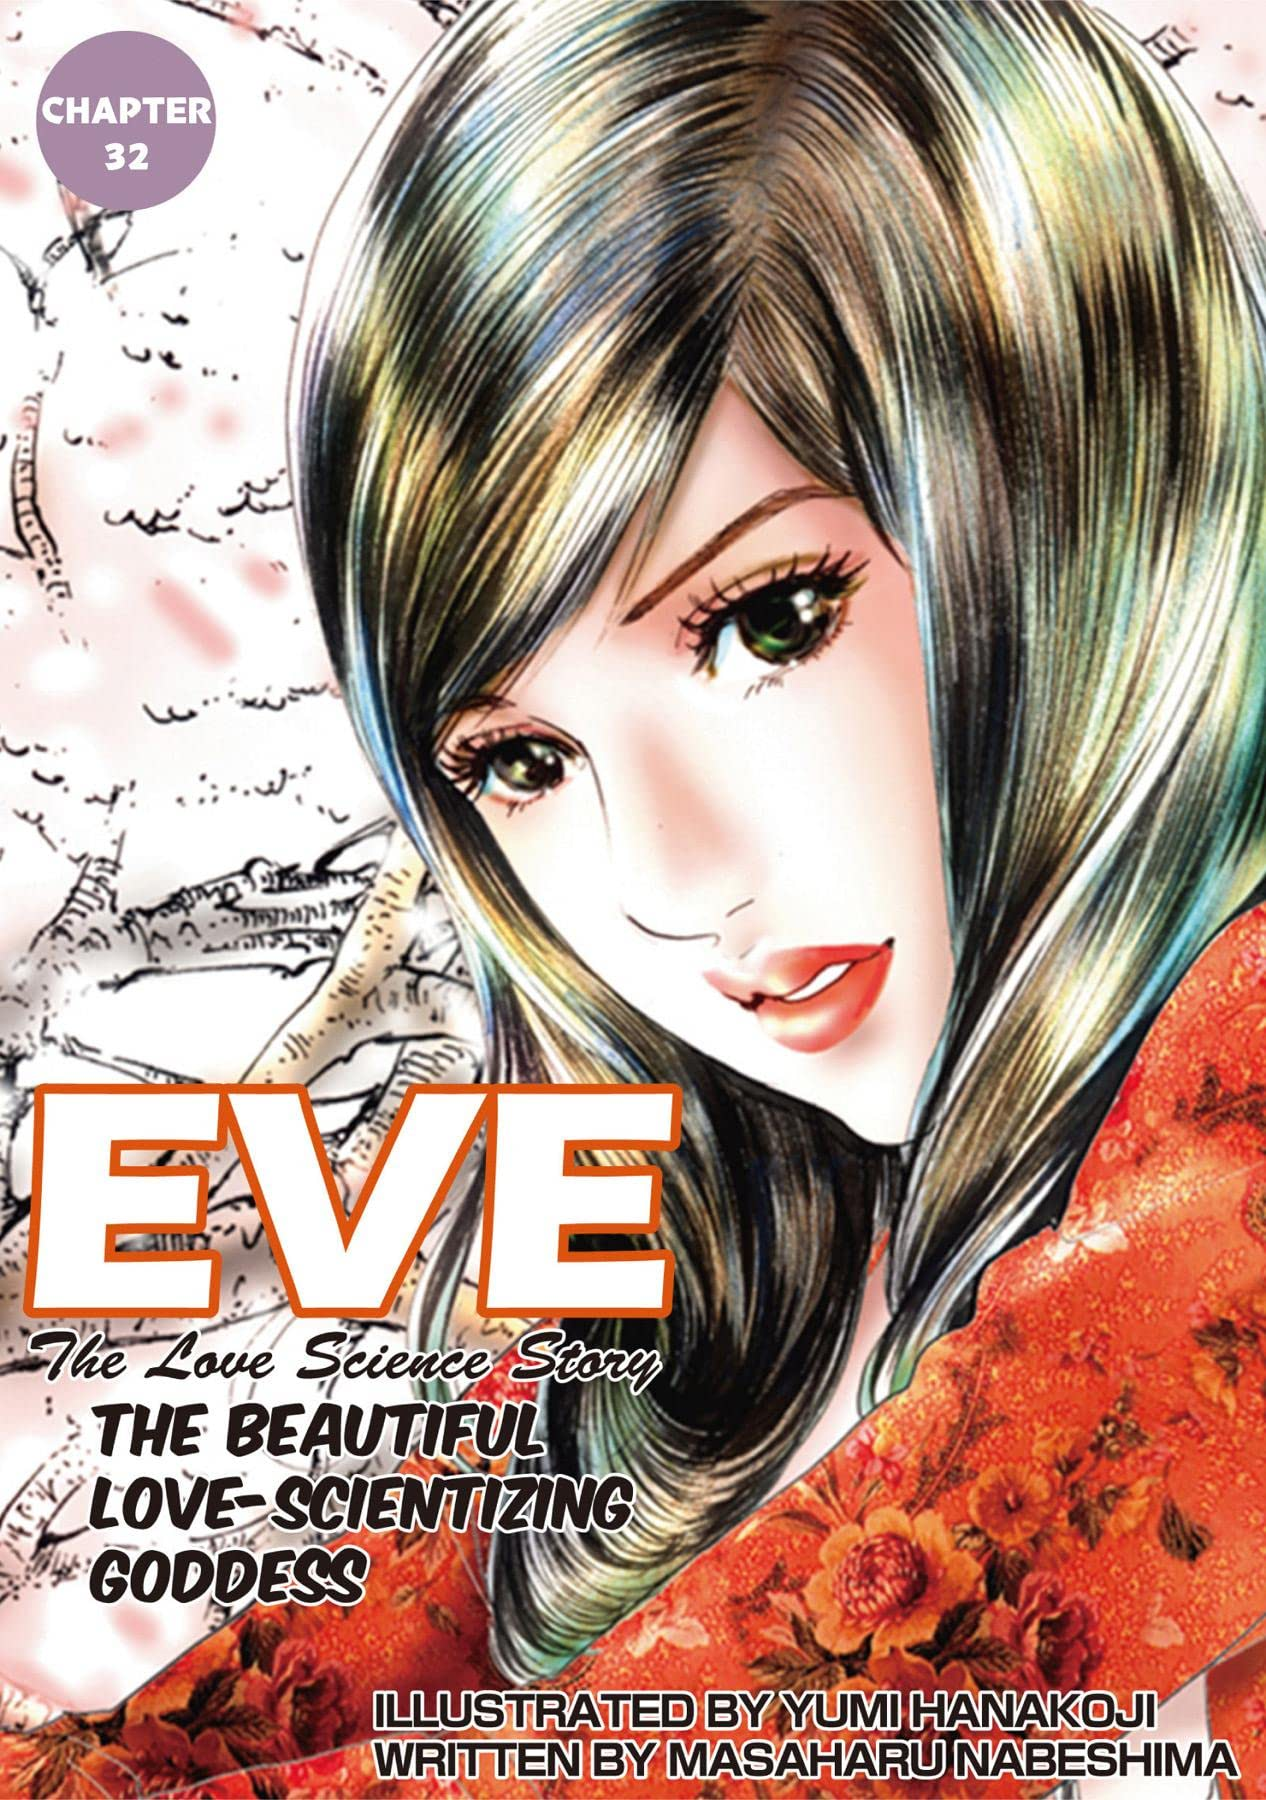 EVE:THE BEAUTIFUL LOVE-SCIENTIZING GODDESS #32